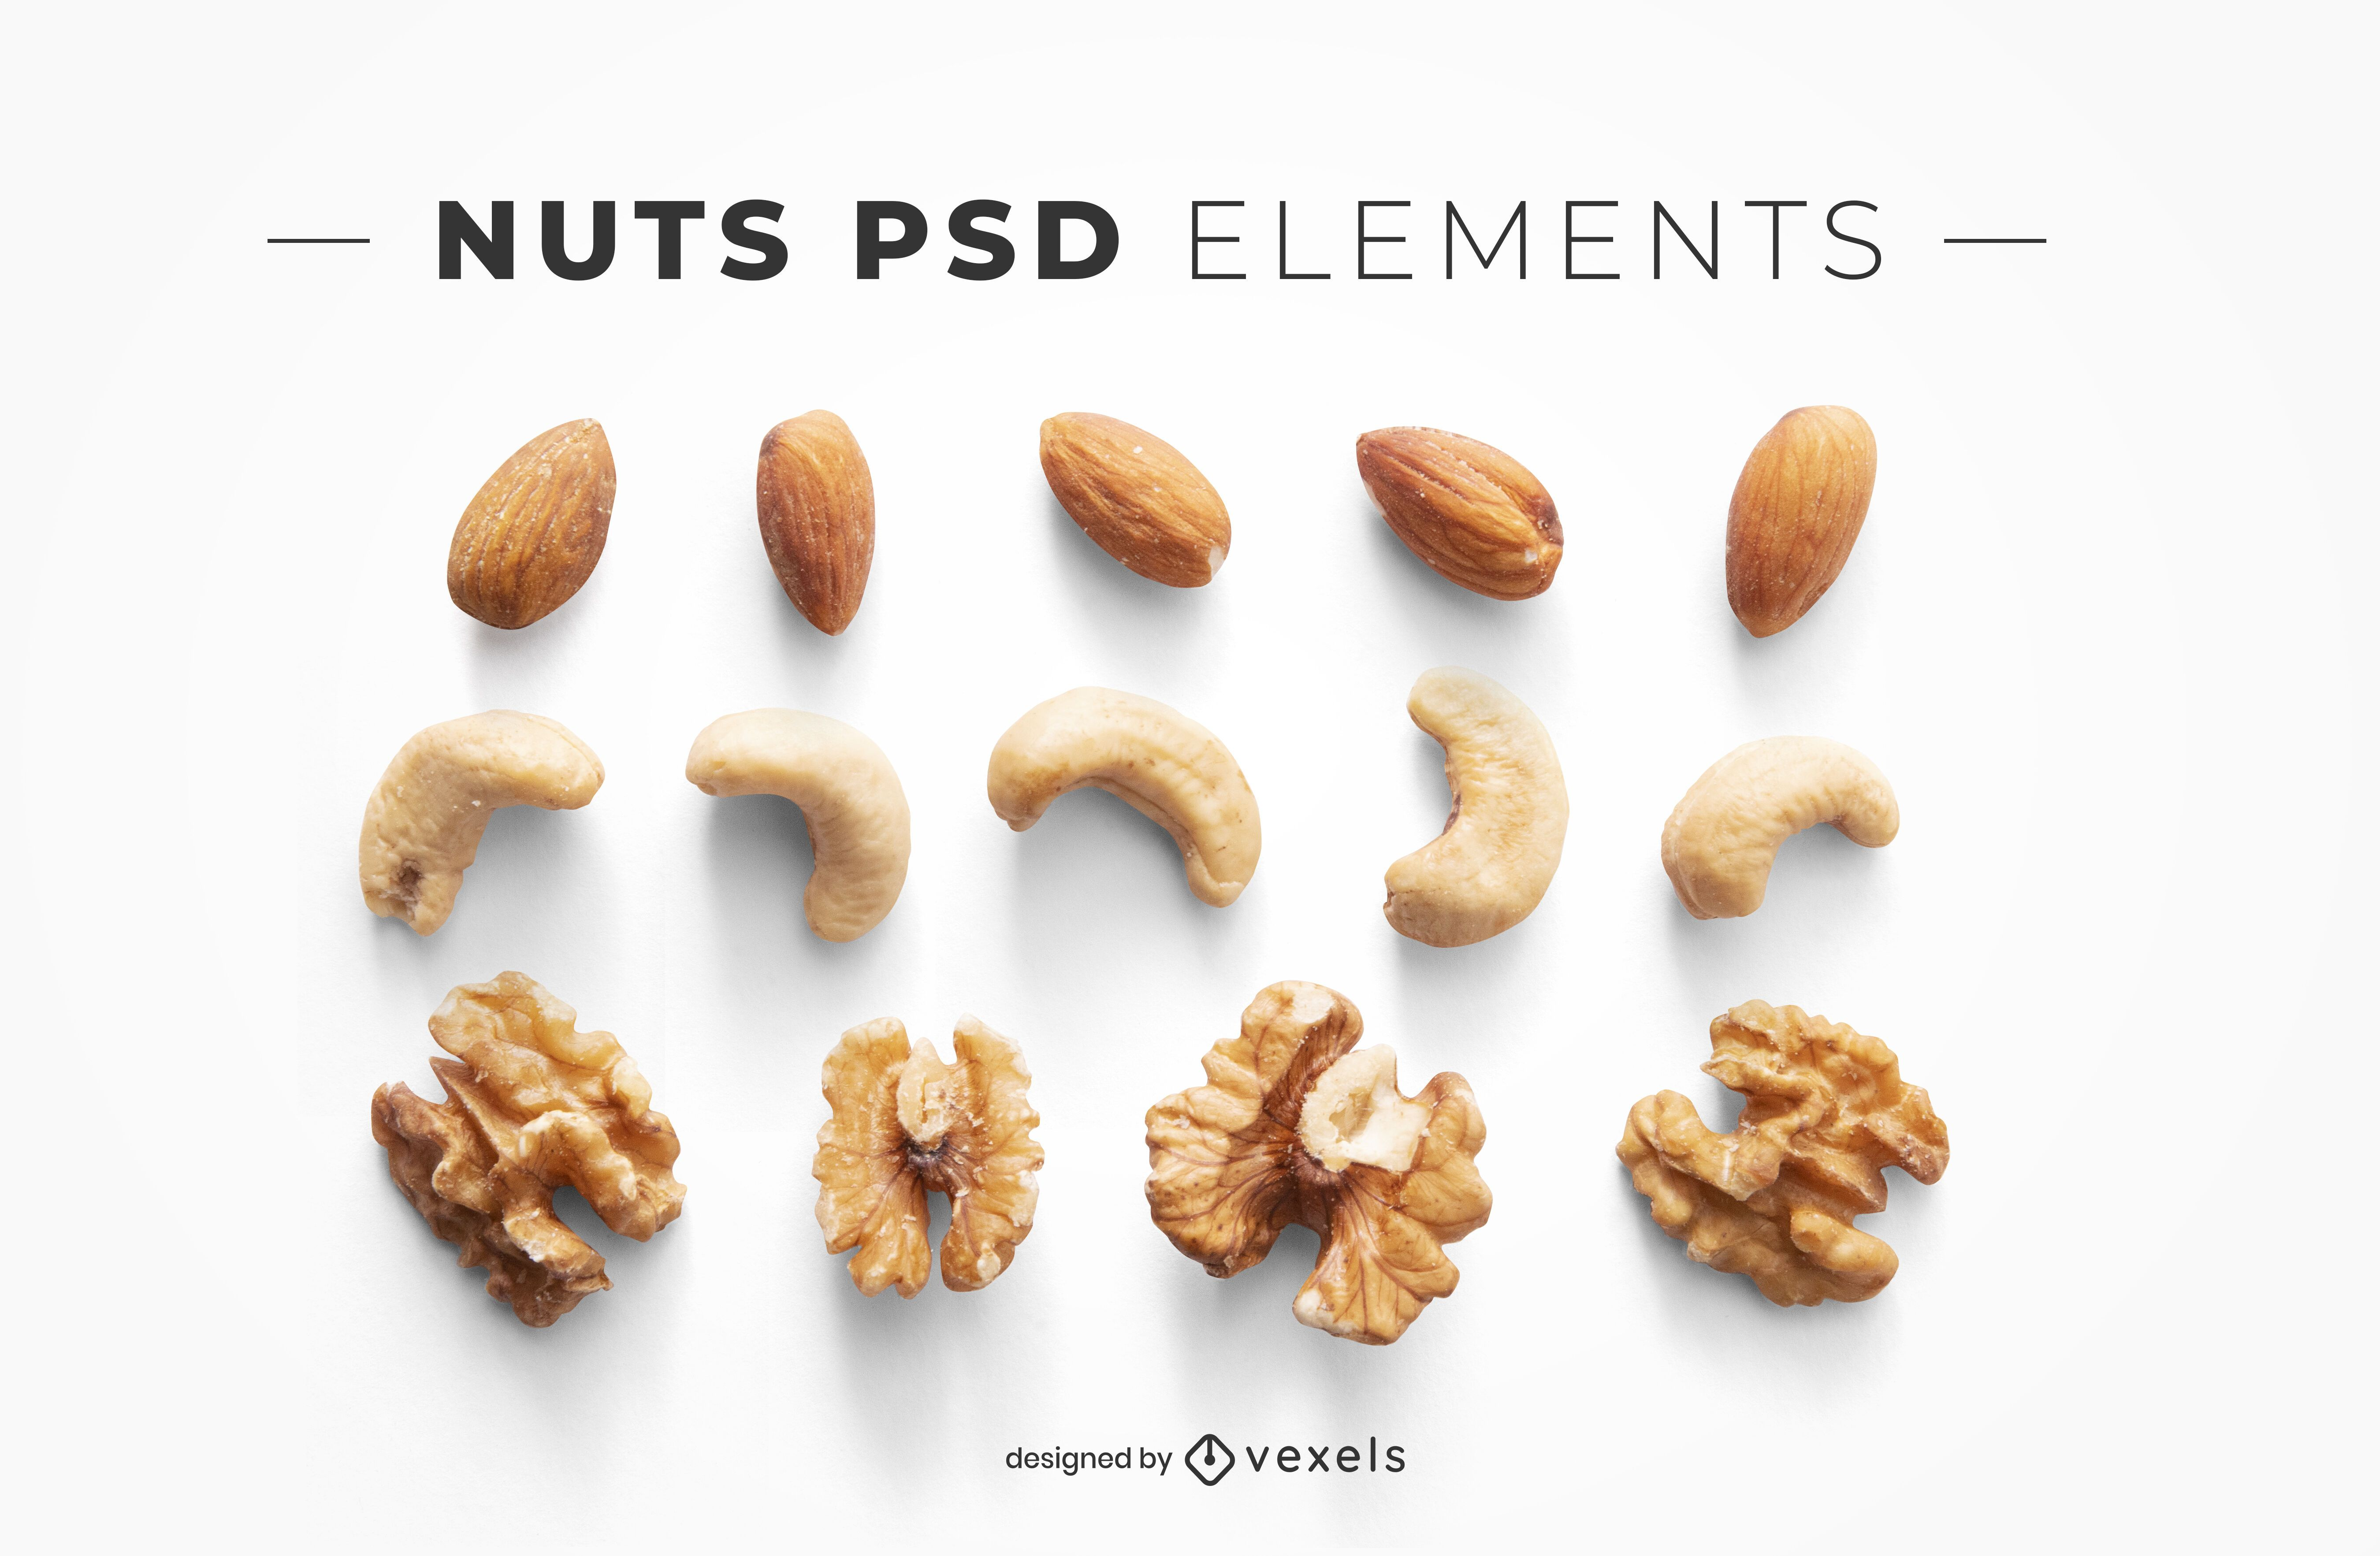 Nuts psd elements for mockups